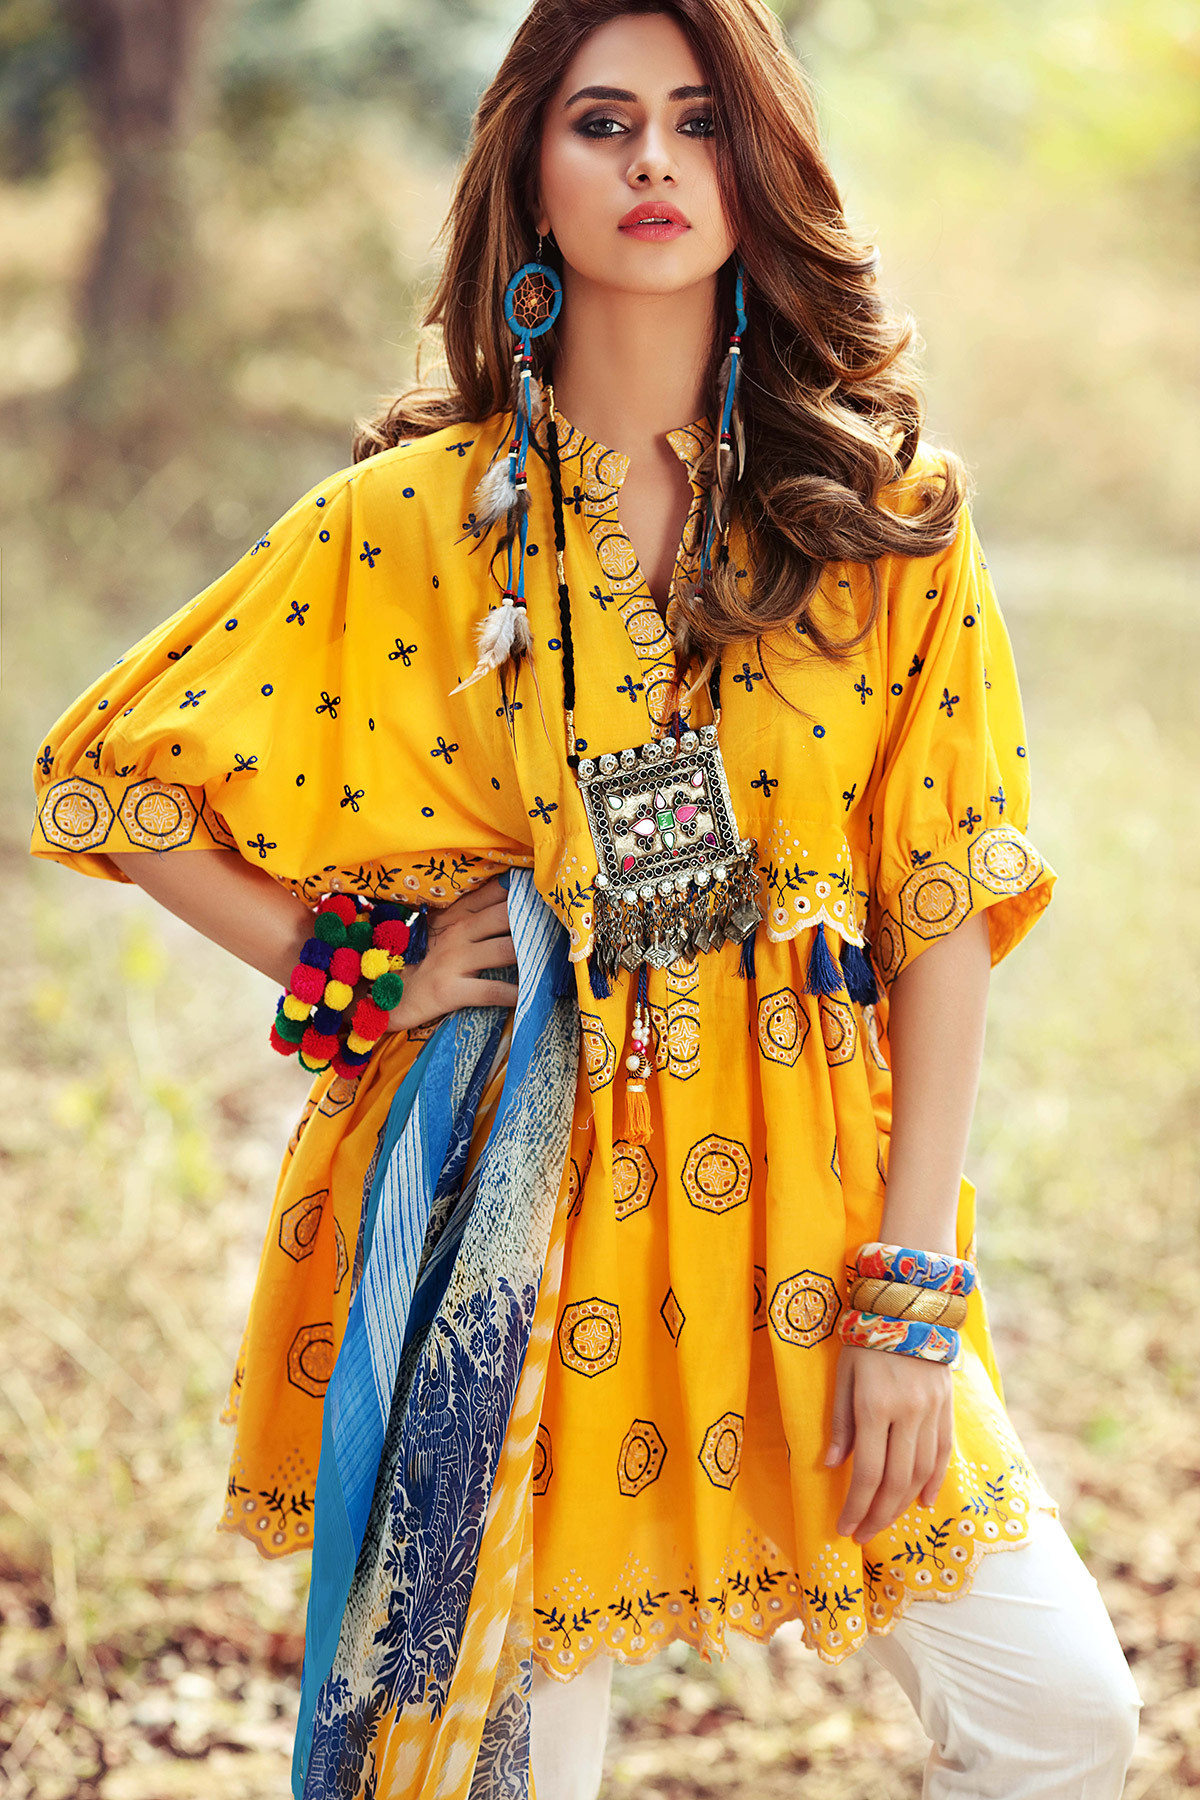 gypsy beautiful dress 2017 for girls